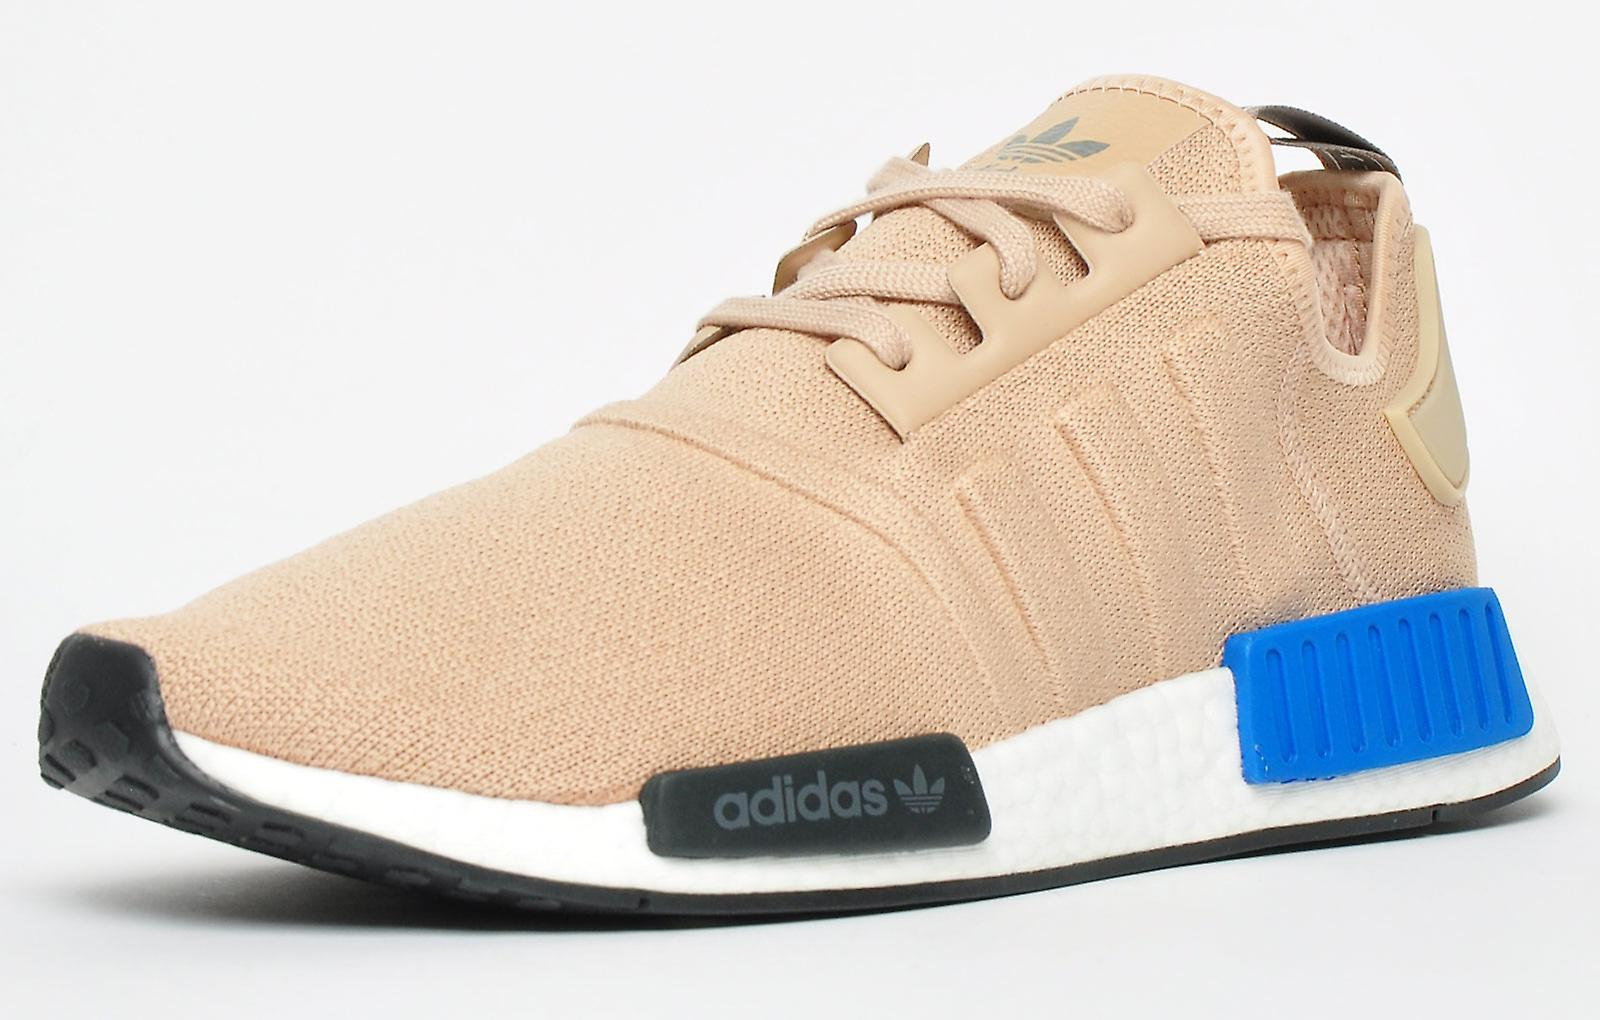 Wmns NMD_R1 Pale Nude - adidas - BB6366 | GOAT